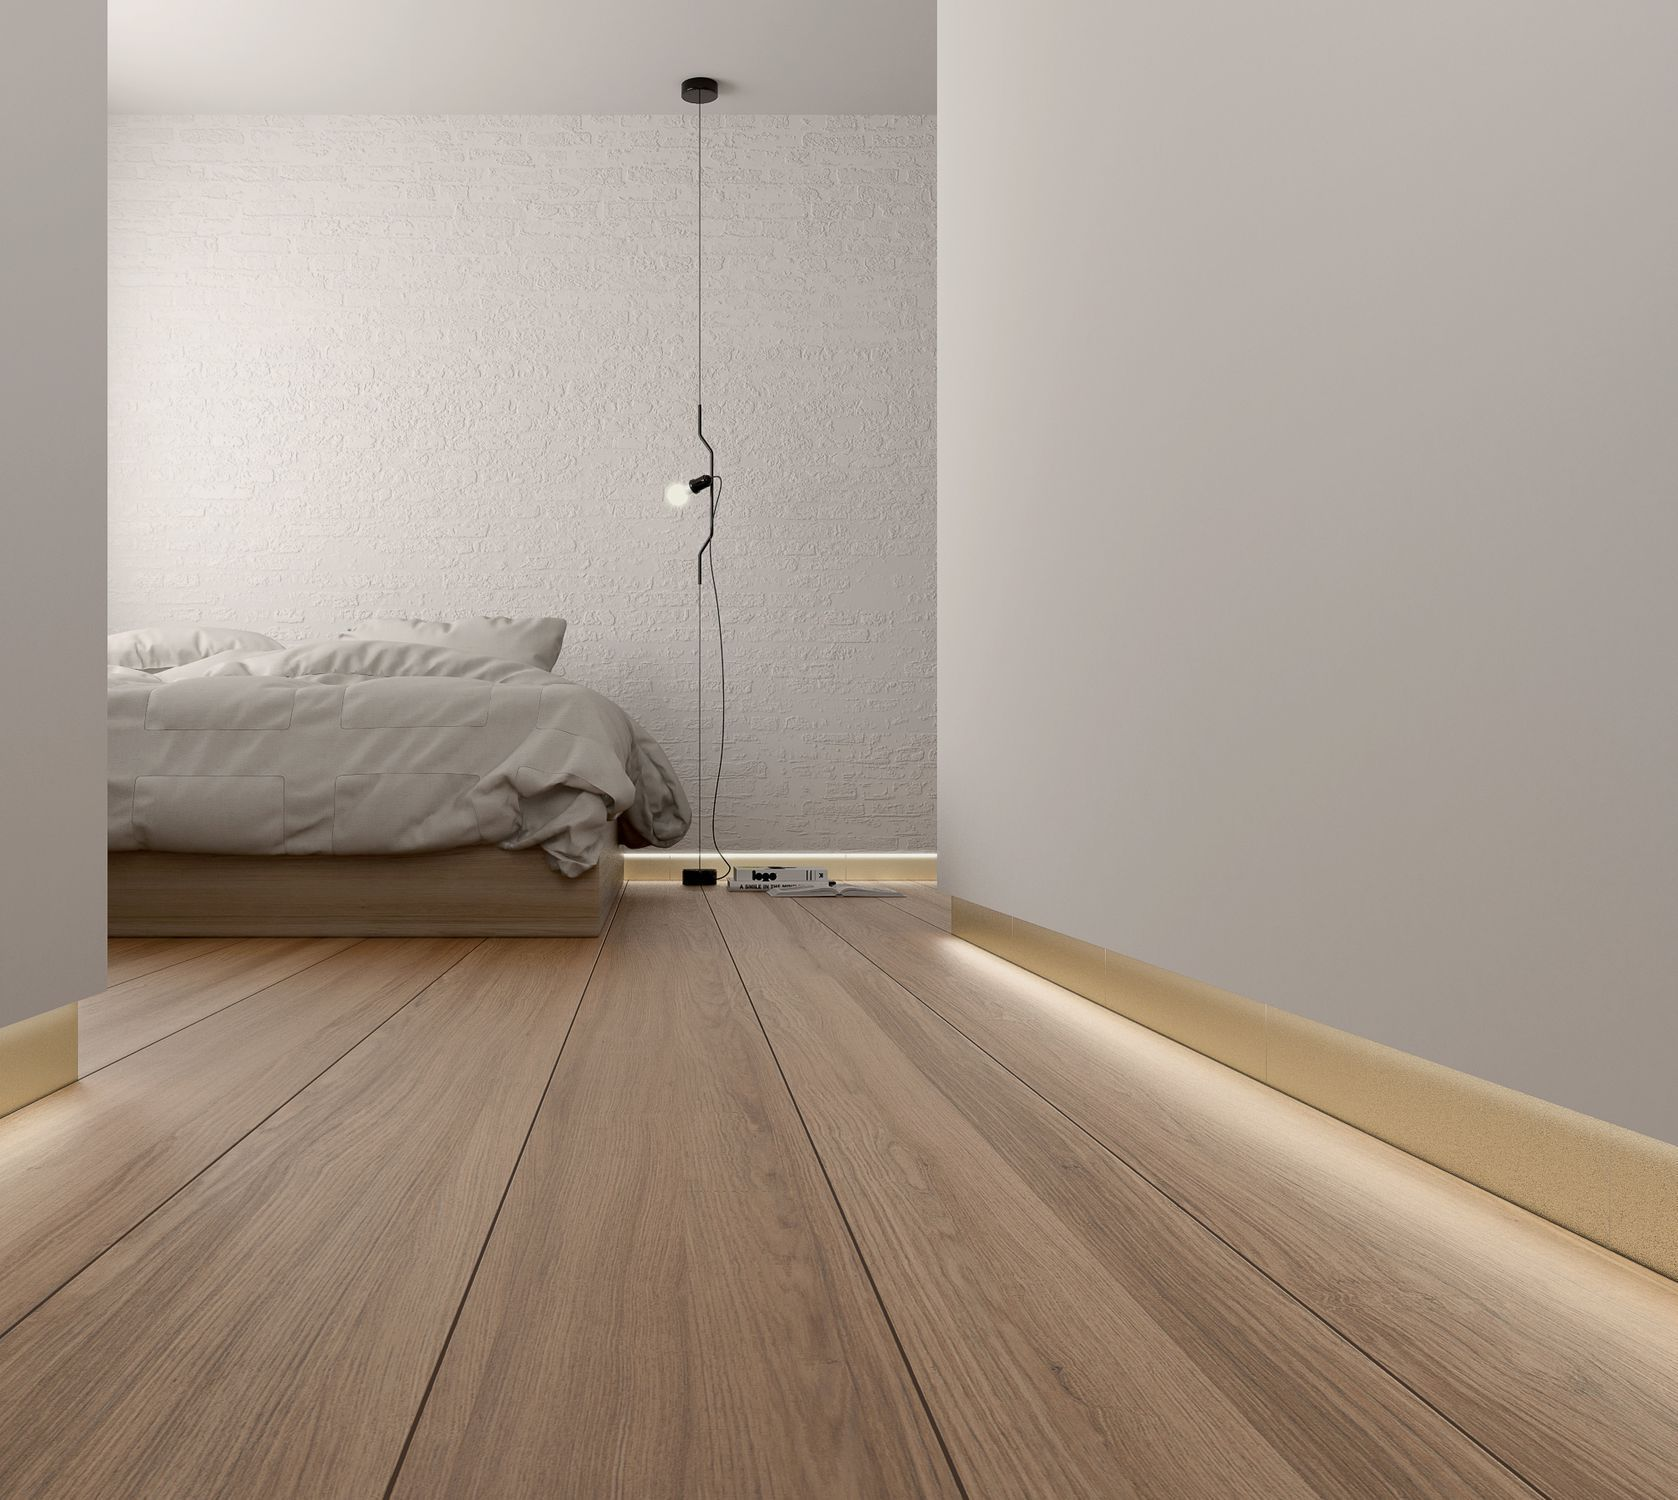 Floor tile metal matte silver luminar gold alea skirting discover all the information about the product indoor tile floor metal matte luminar gold alea and find where you can buy it dailygadgetfo Image collections